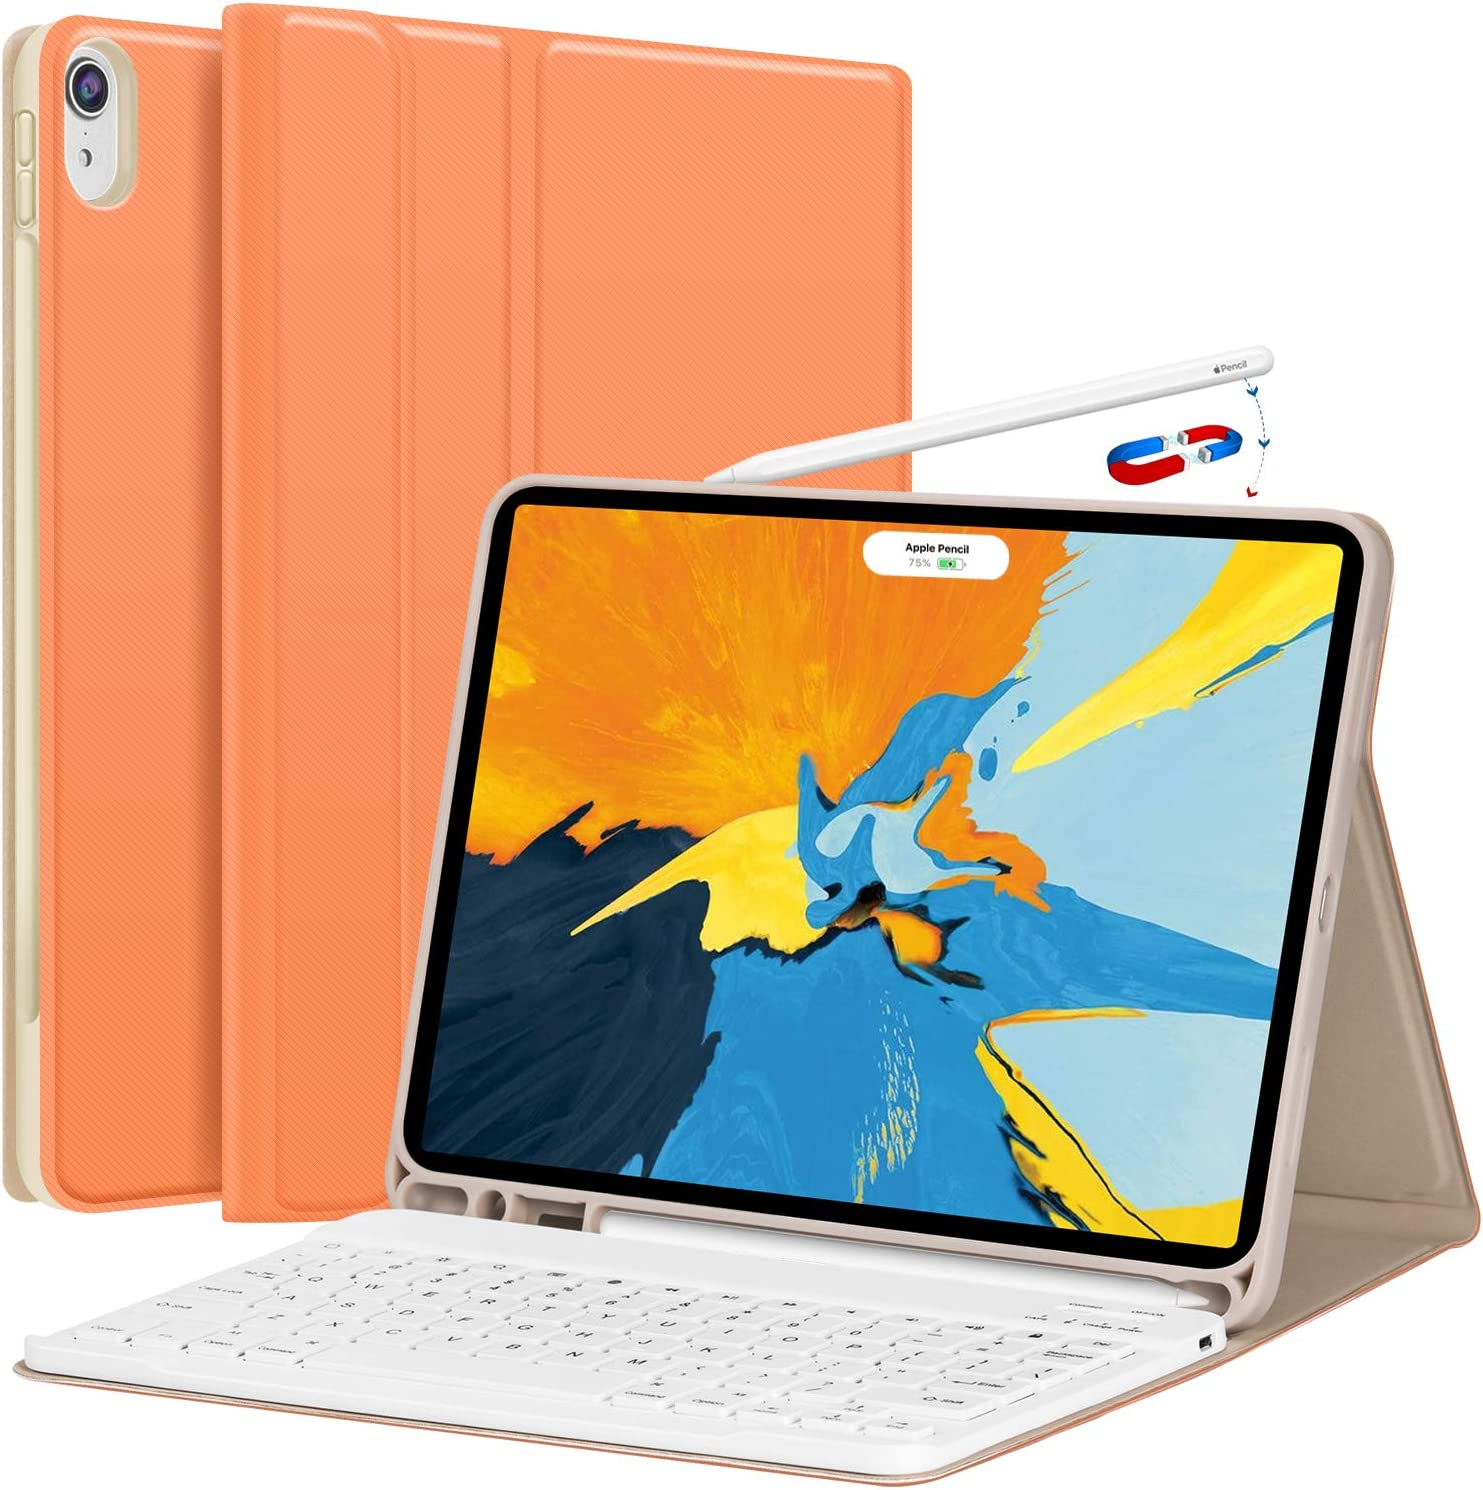 iPad Pro 11 Case with Keyboard 2018 - Detachable Wireless Keyboard [Support Apple Pencil Charging] - PU Leather Folio Stand Cover with Pencil Holder for iPad Pro 11 Inch 2018, Papaya